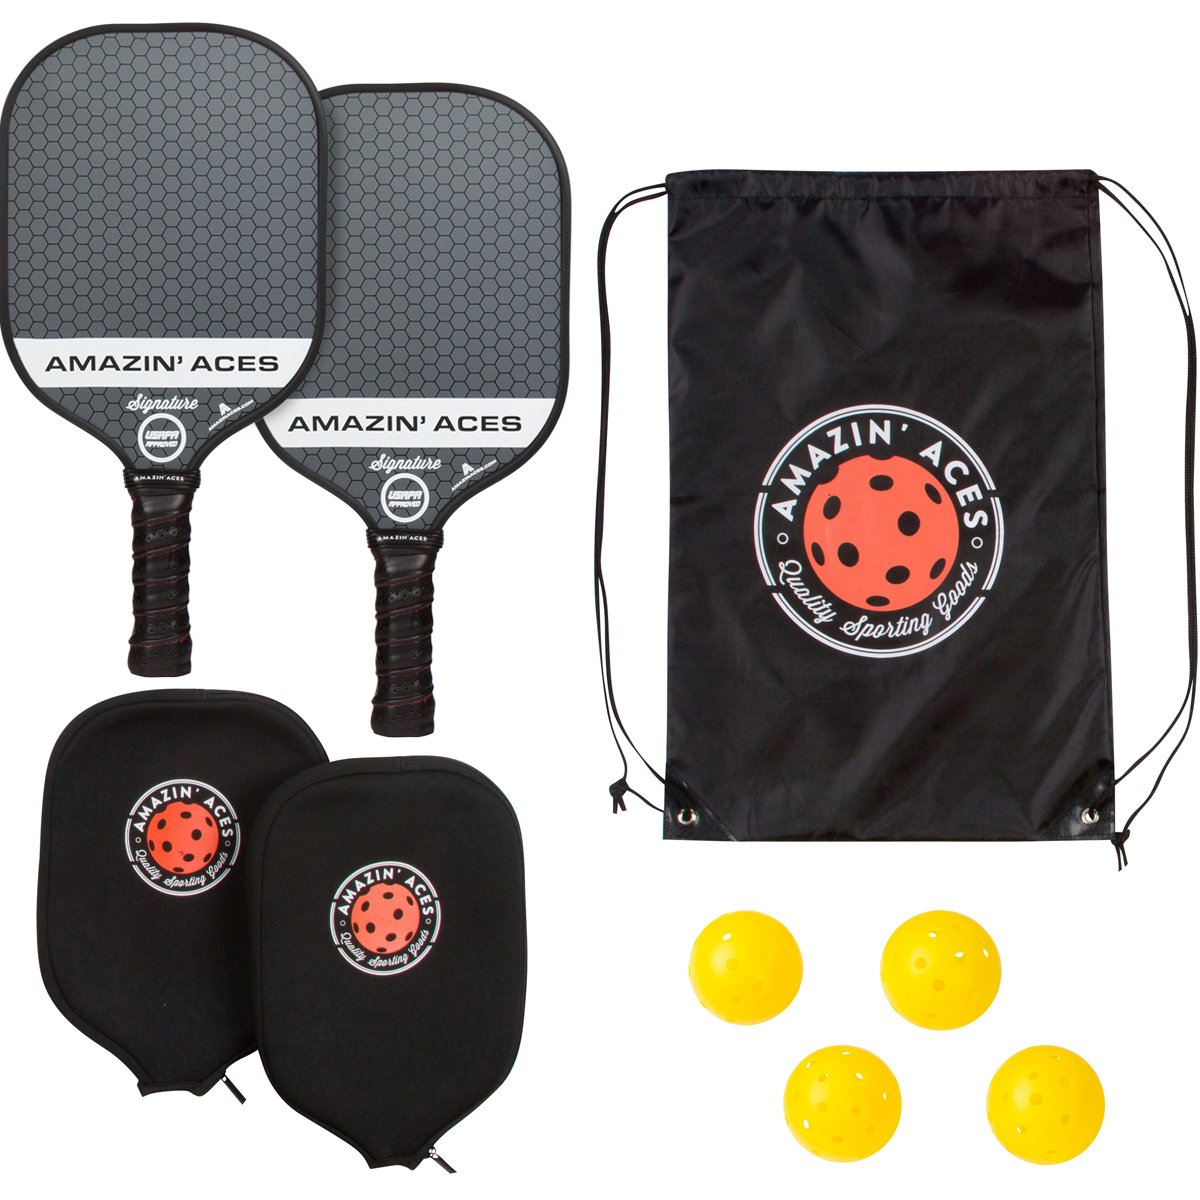 Amazin Aces Signature pickleball paddle